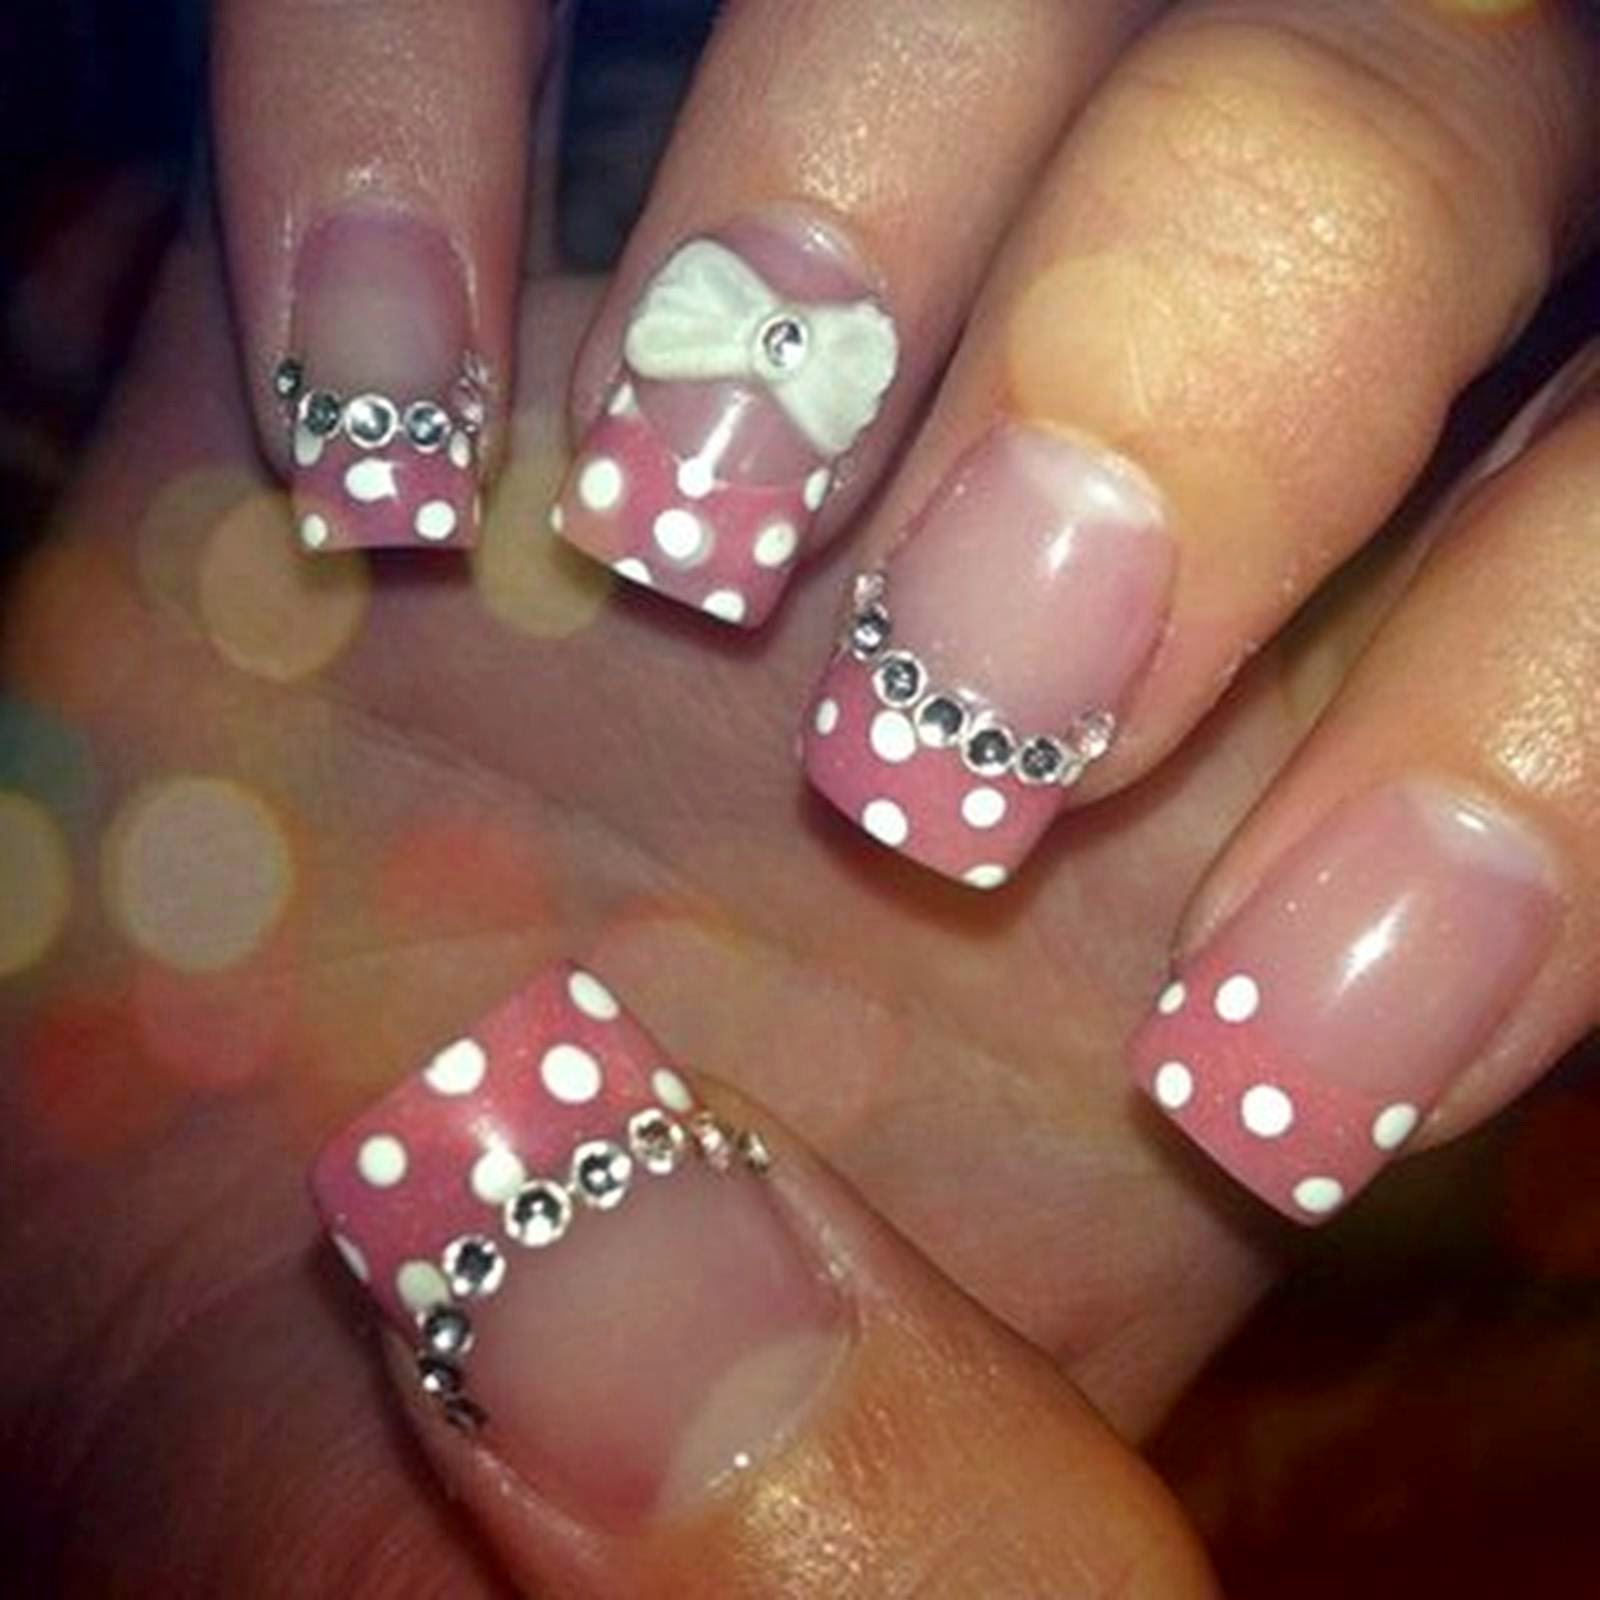 Acrylic nail designs | Nail Art and Tattoo Design Ideas ...